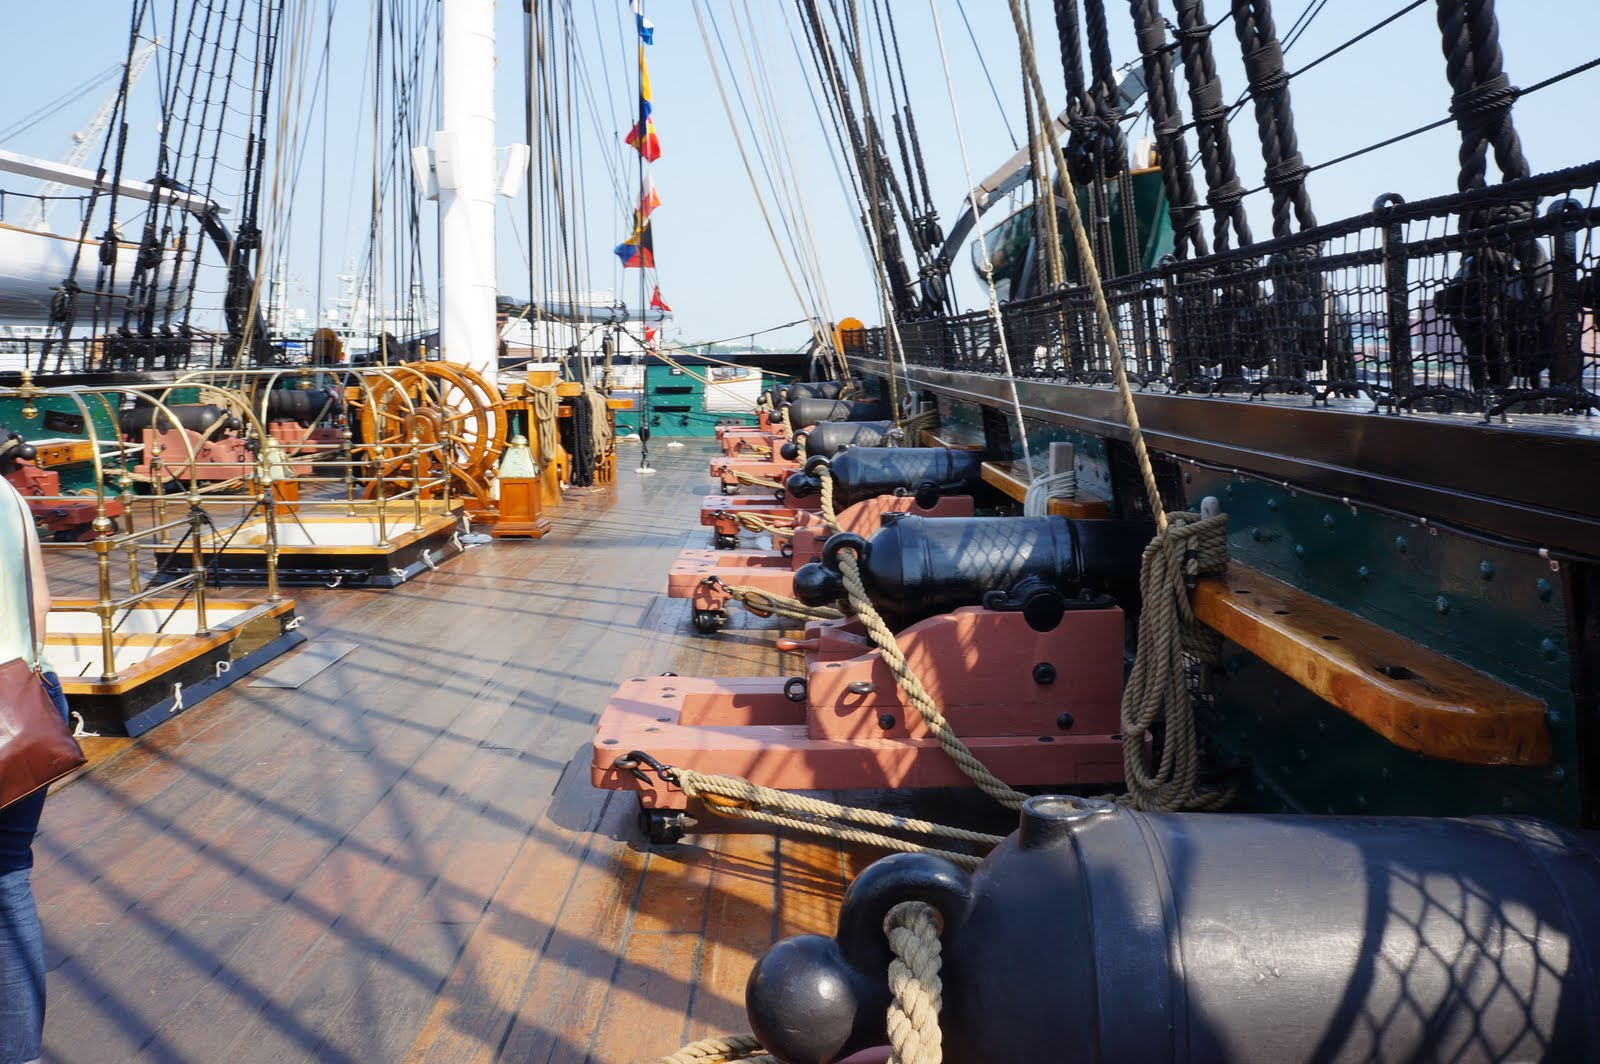 Naval legacy | Not as it Looks Uss Constitution Pictures Of Deck